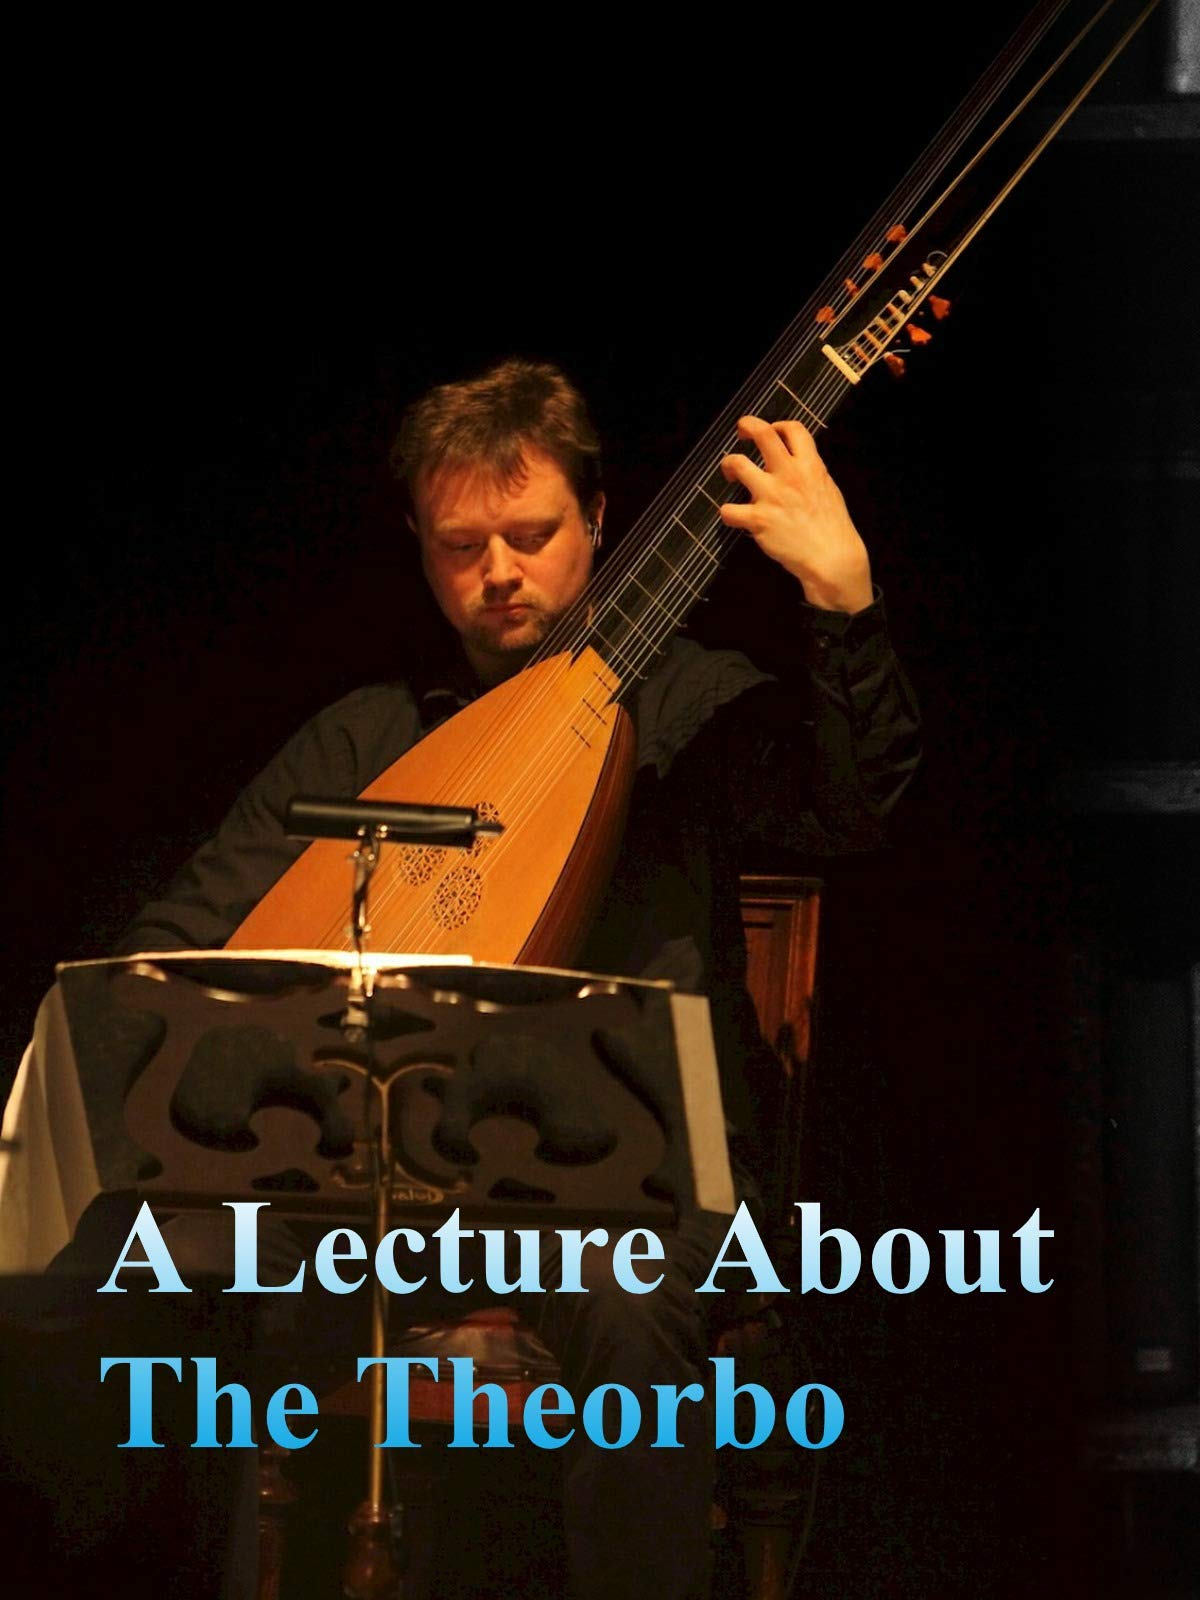 A Lecture About The Theorbo